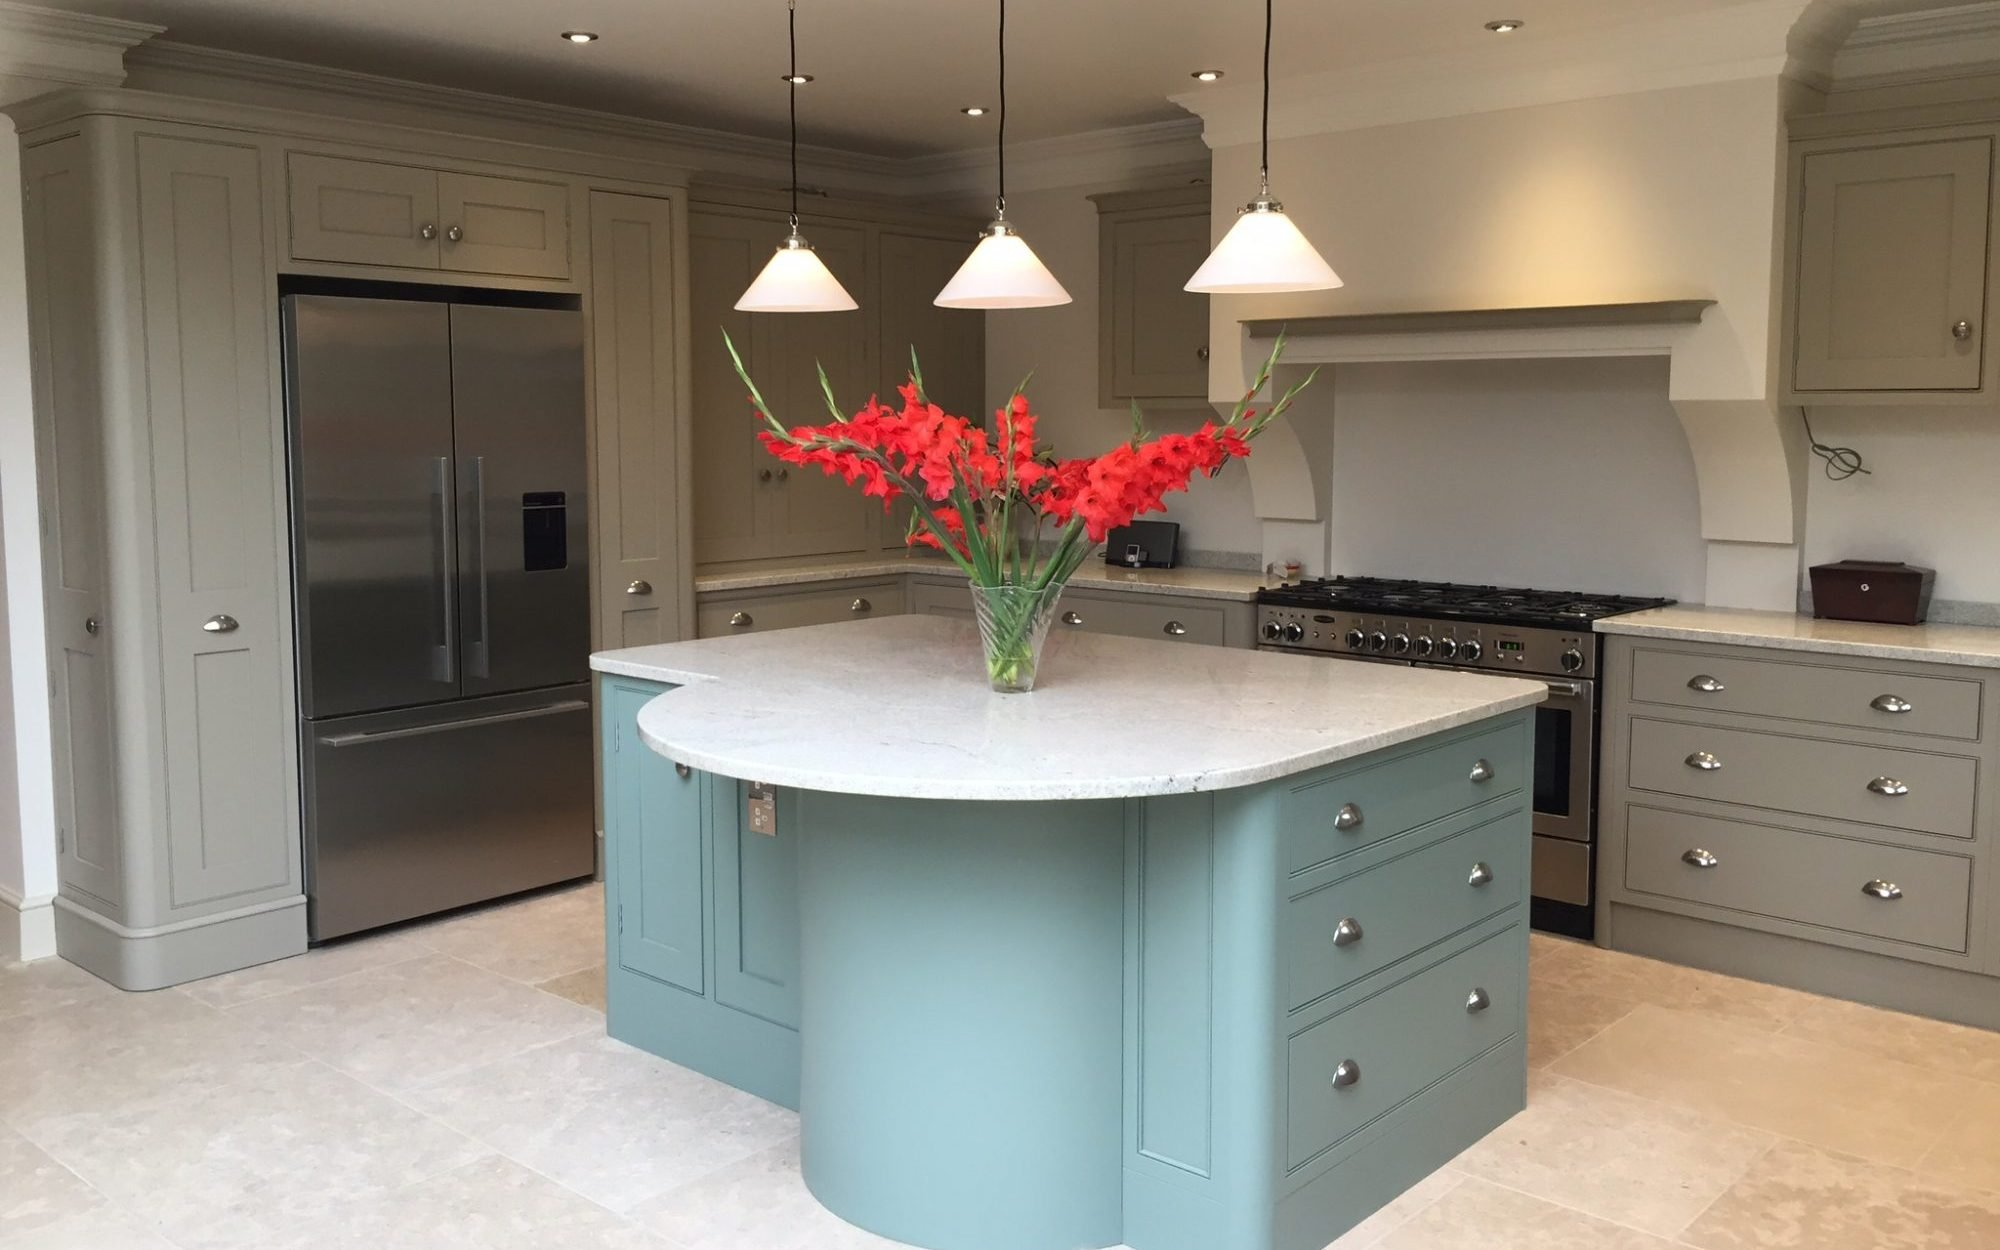 Bespoke Modern Kitchen - Bourne's Fine Furniture